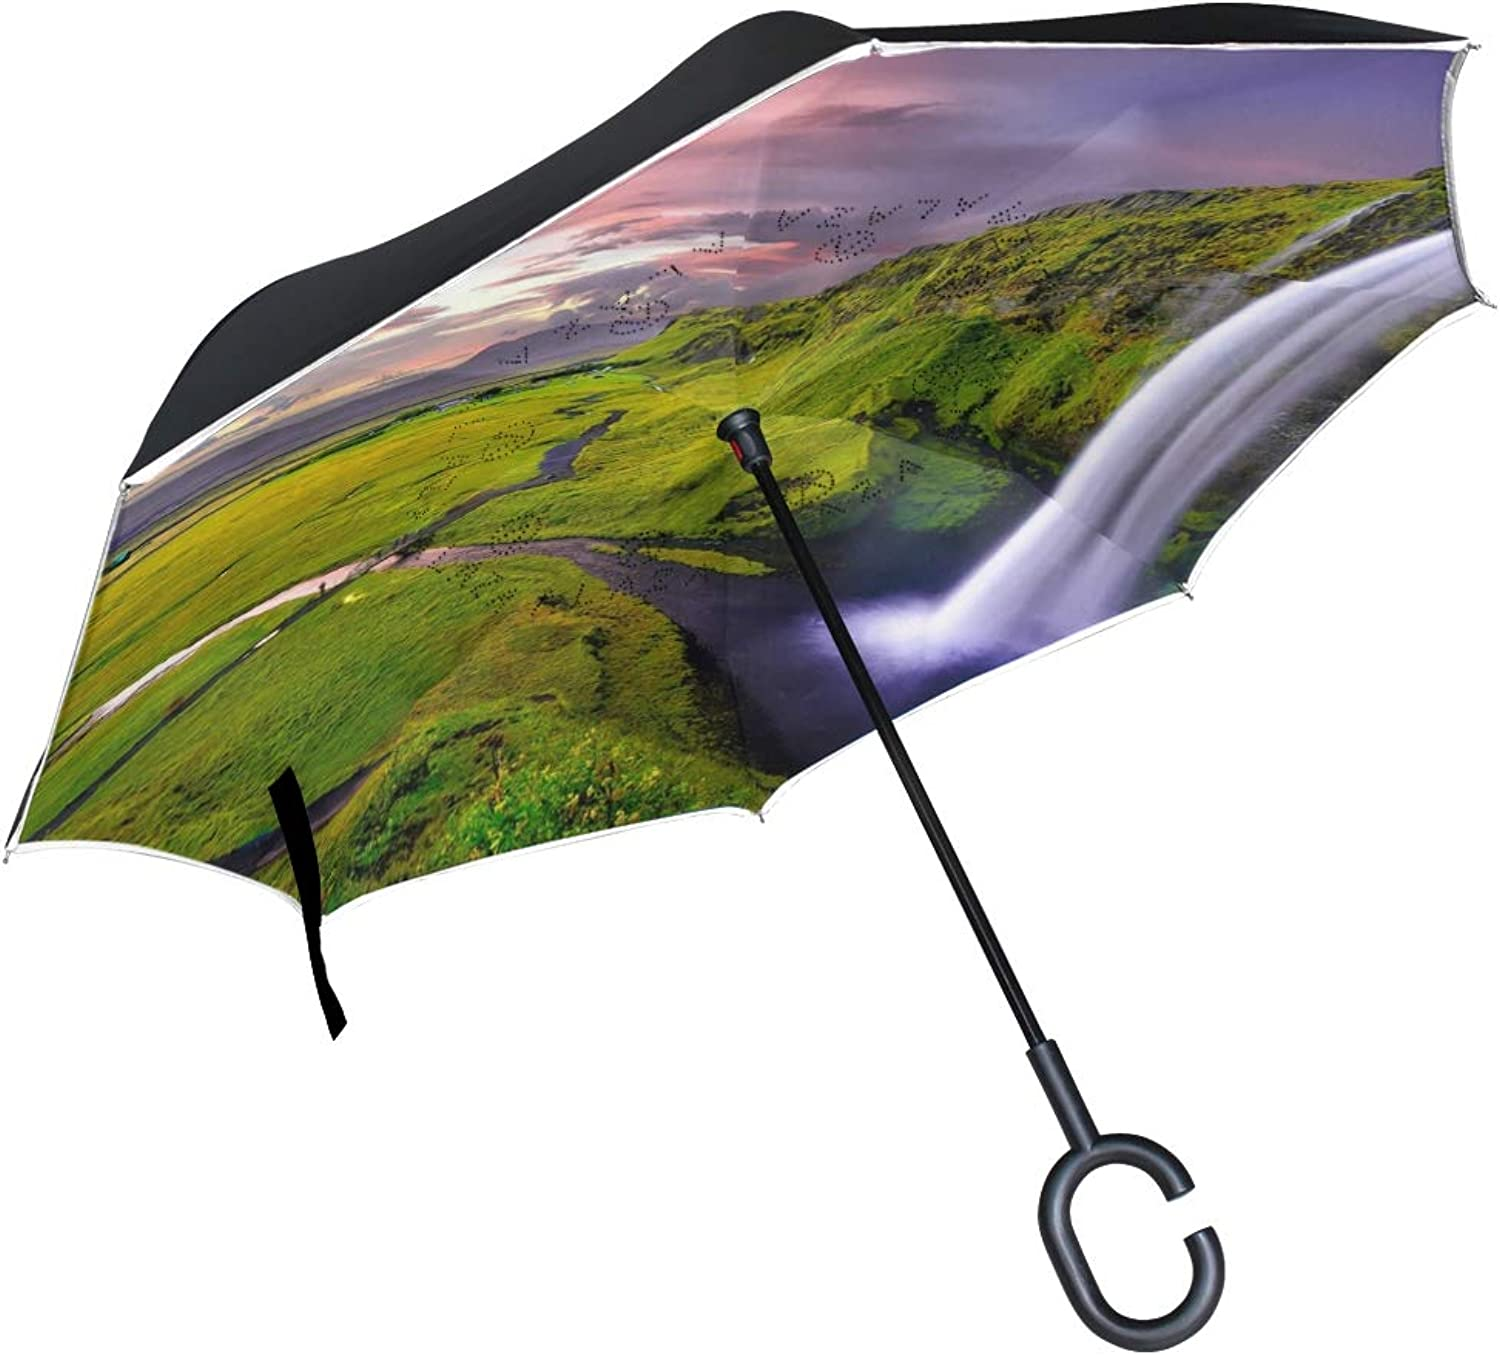 HEOEH Splendid Scene Waterfall Ingreened Umbrella Windproof Reverse Folding Double Layer Travel Umbrella with C Shape Handle